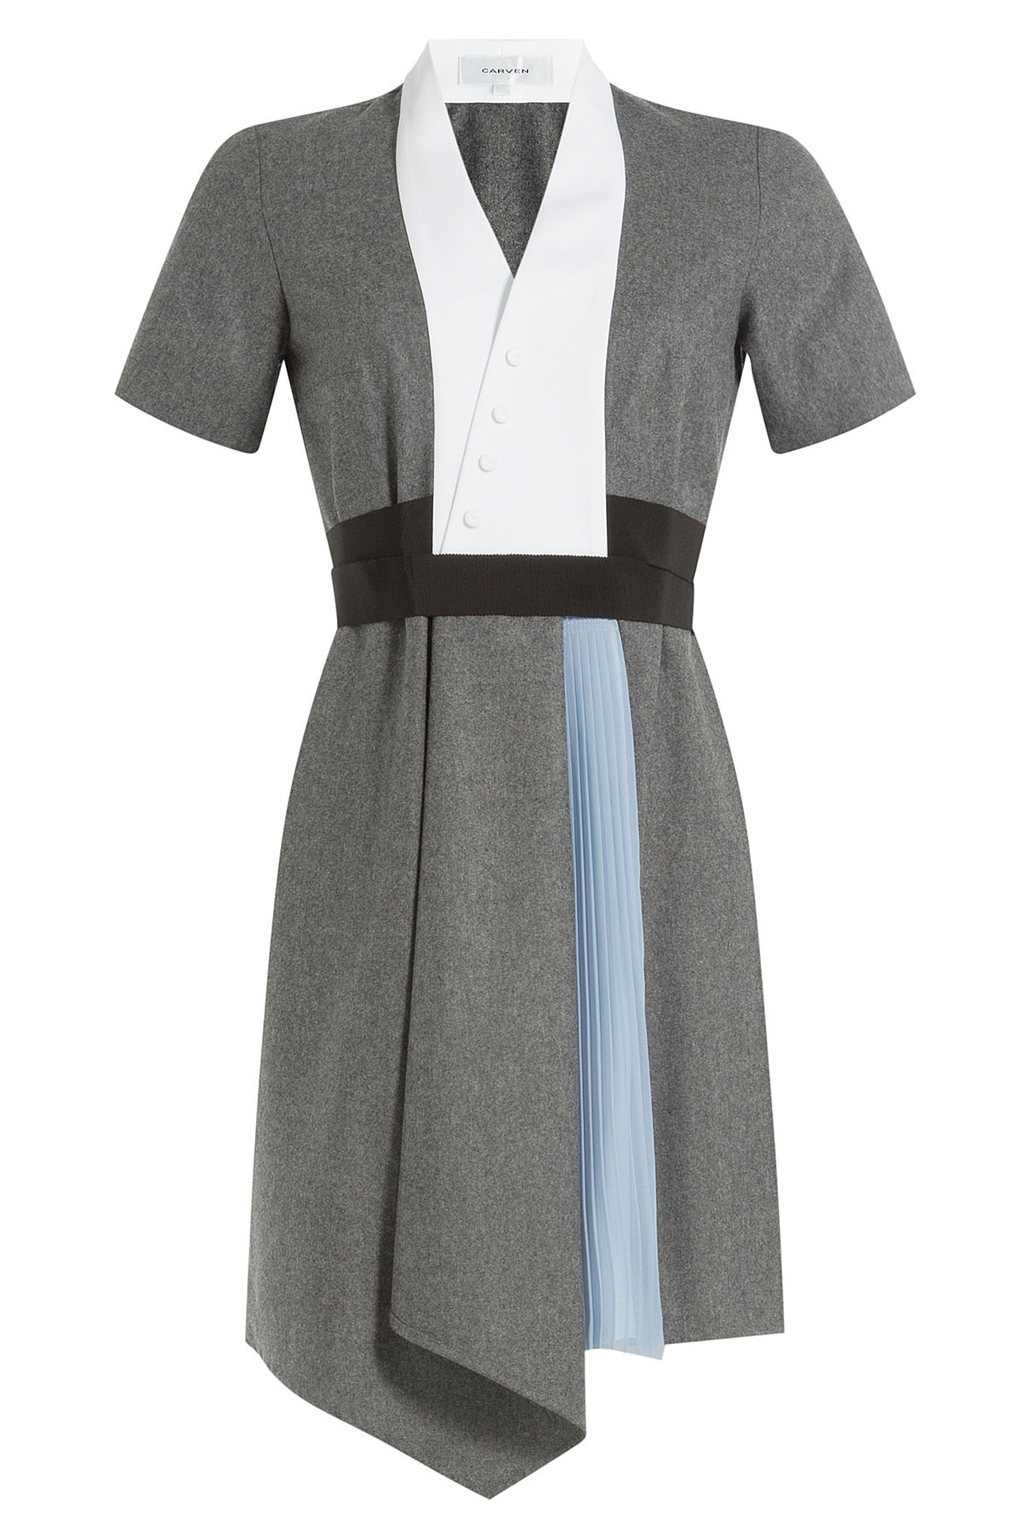 Wool Dress With Pleated Insert - style: shift; neckline: v-neck; secondary colour: white; predominant colour: mid grey; occasions: evening; length: just above the knee; fit: body skimming; fibres: wool - 100%; sleeve length: short sleeve; sleeve style: standard; texture group: knits/crochet; pattern type: fabric; pattern: colourblock; multicoloured: multicoloured; season: a/w 2016; wardrobe: event